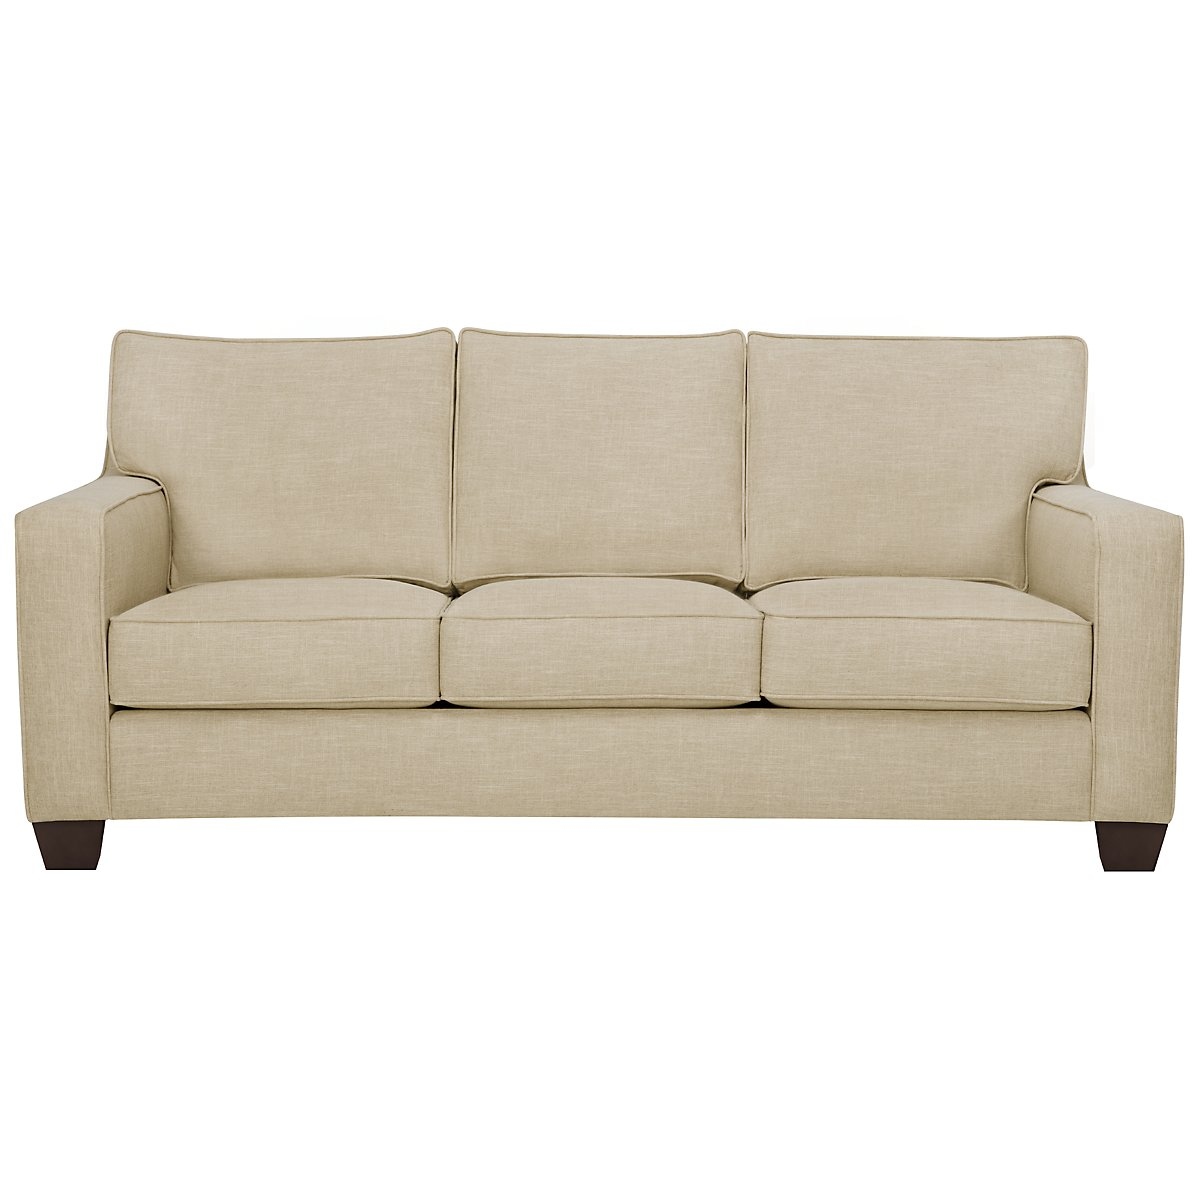 York Beige Fabric Sofa